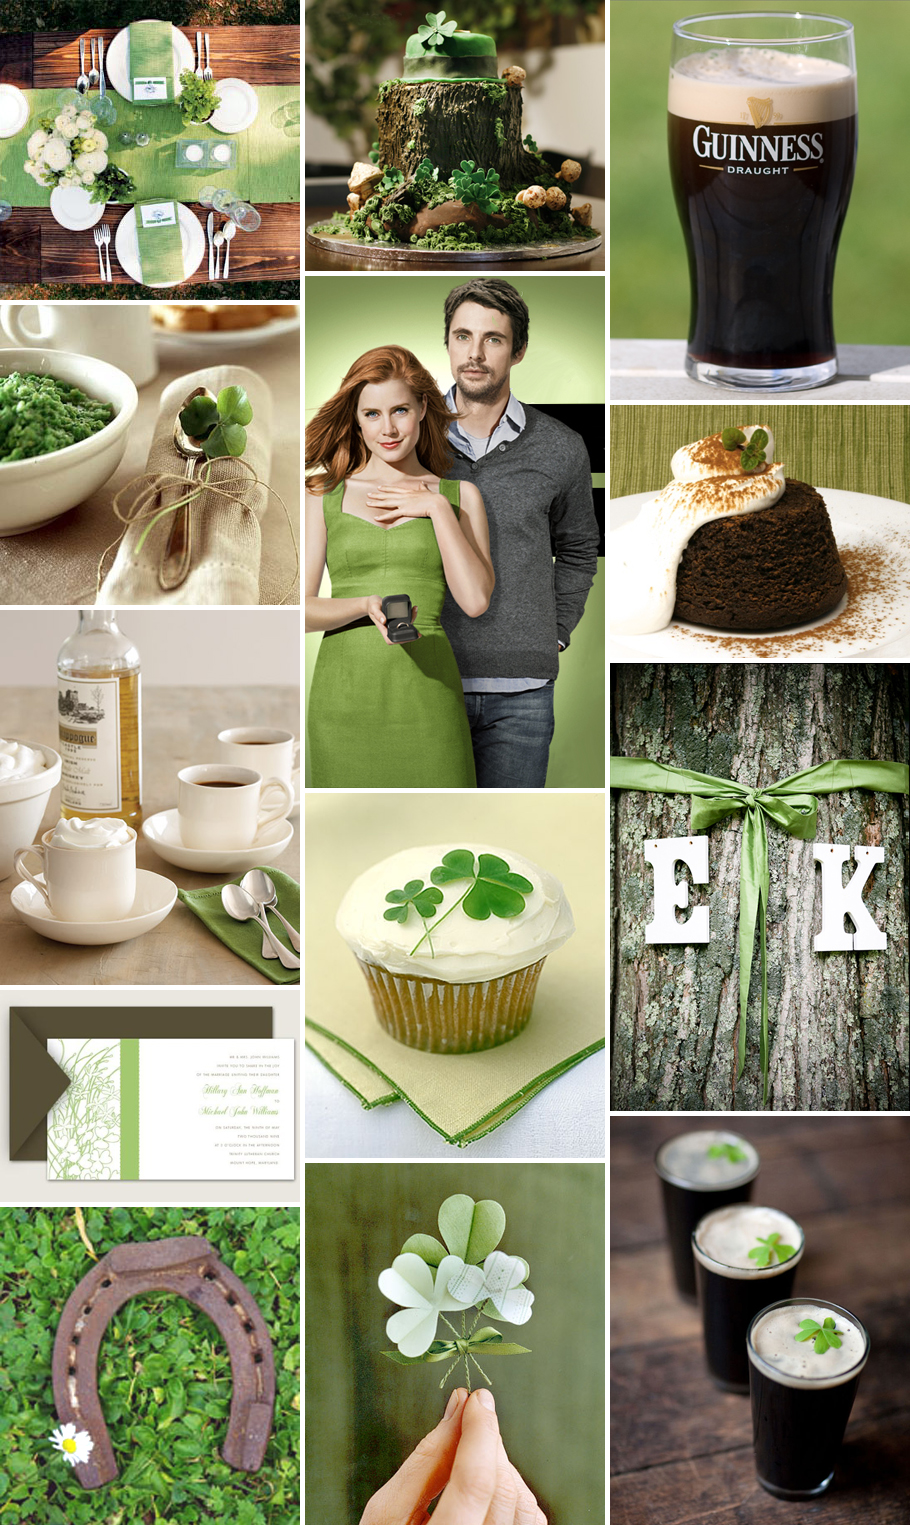 Outdoor Wedding Decorations Ireland : Inspiration a rustic st patrick s day engagement party pixel ink